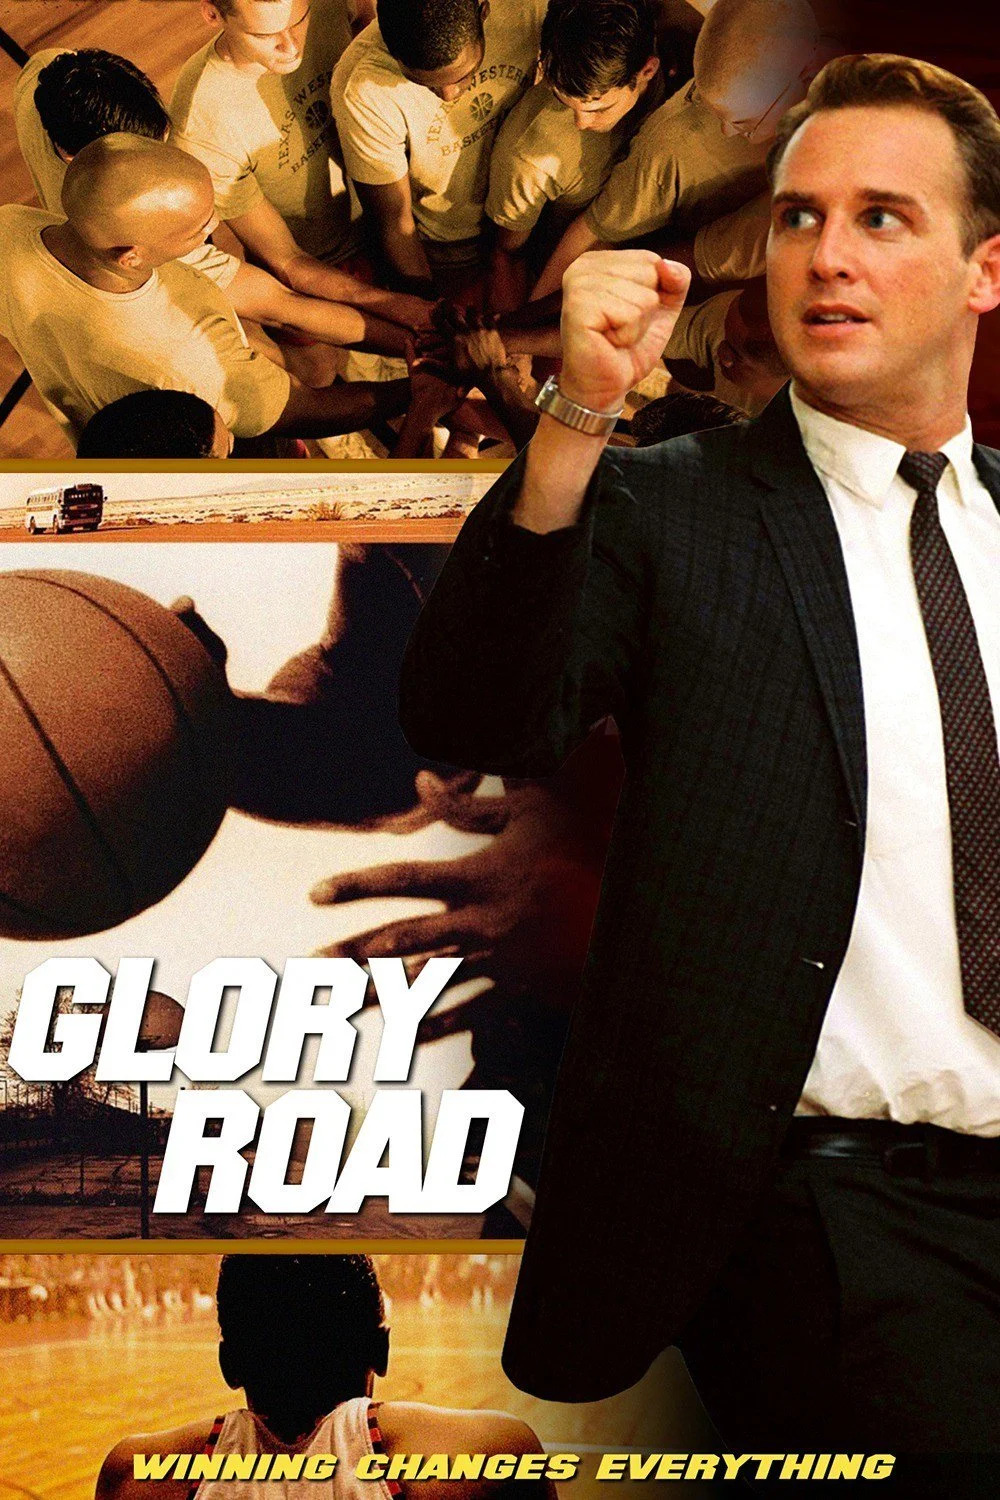 Like in the movies - Glory road